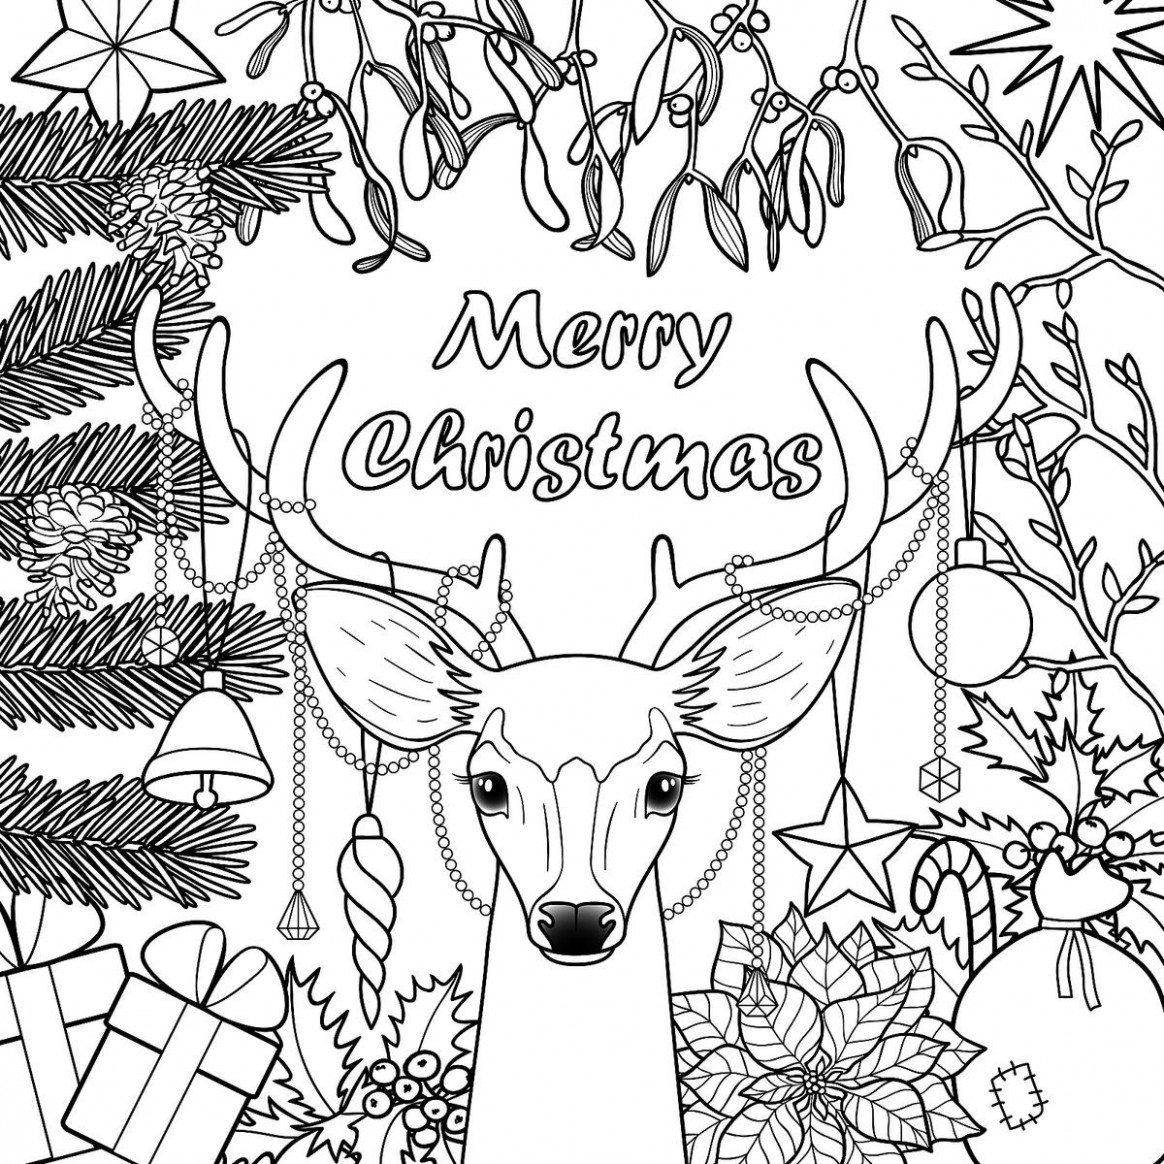 Coloring Book World ~ Free Christmas Coloringoks For Kids Ages And ...